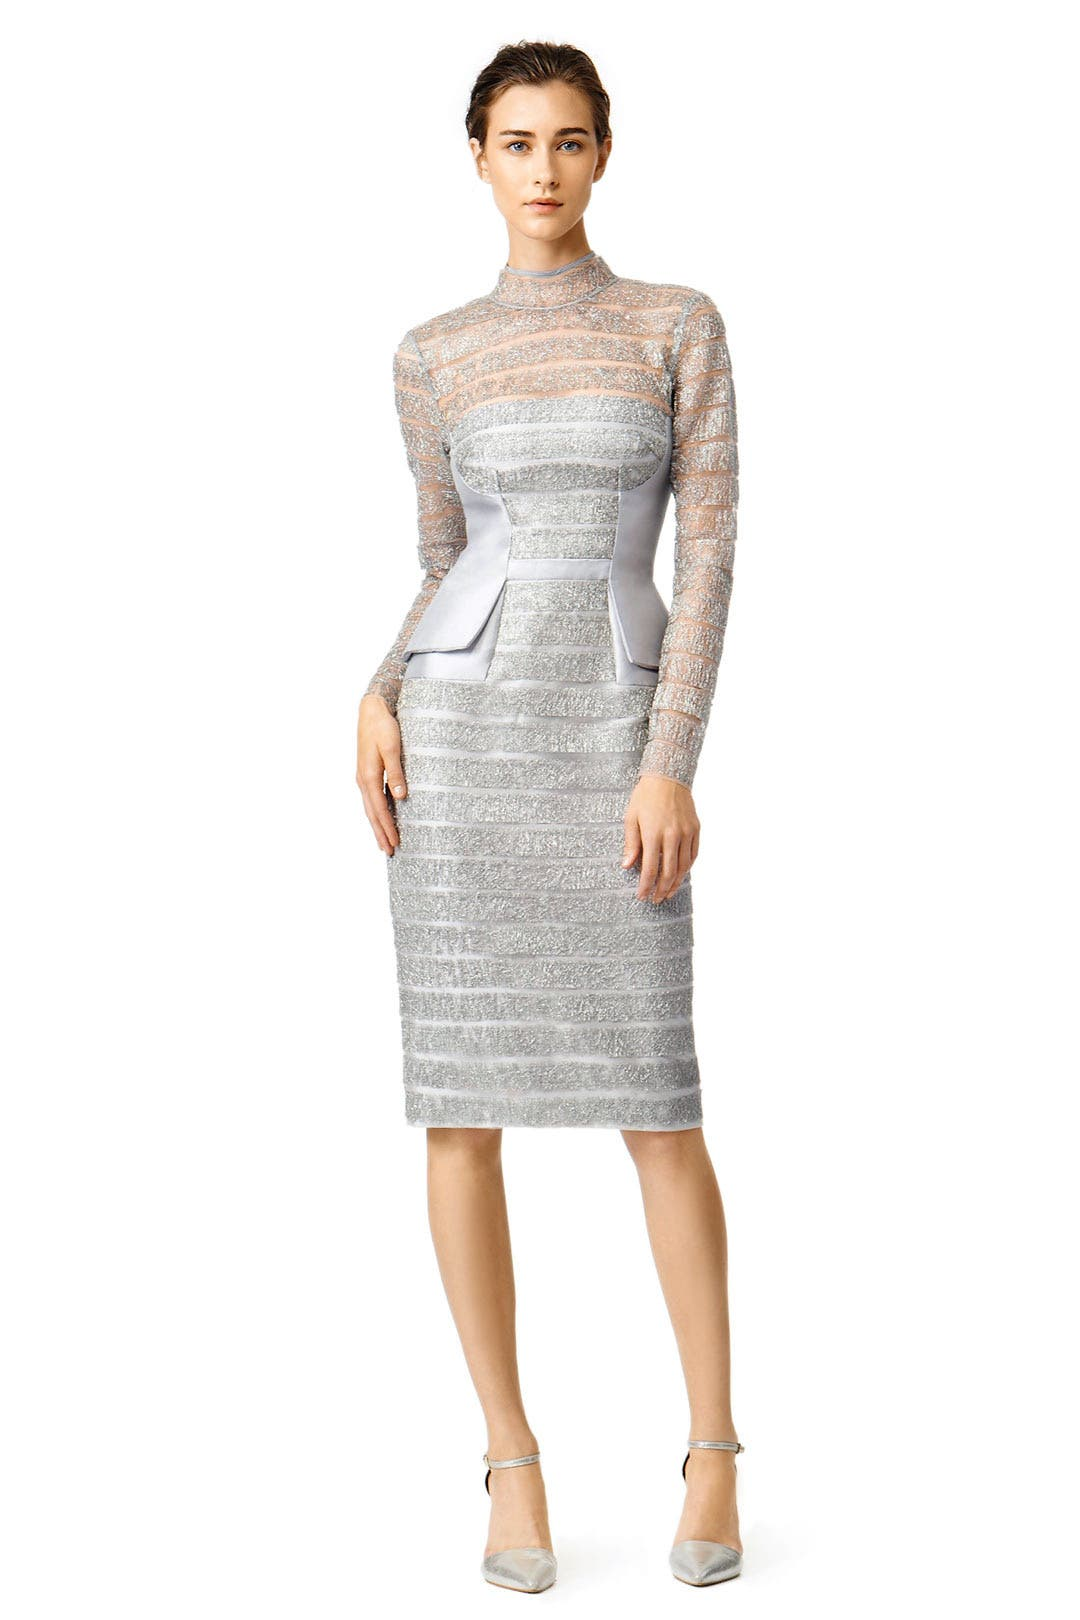 Lines of Lace Dress by Bibhu Mohapatra